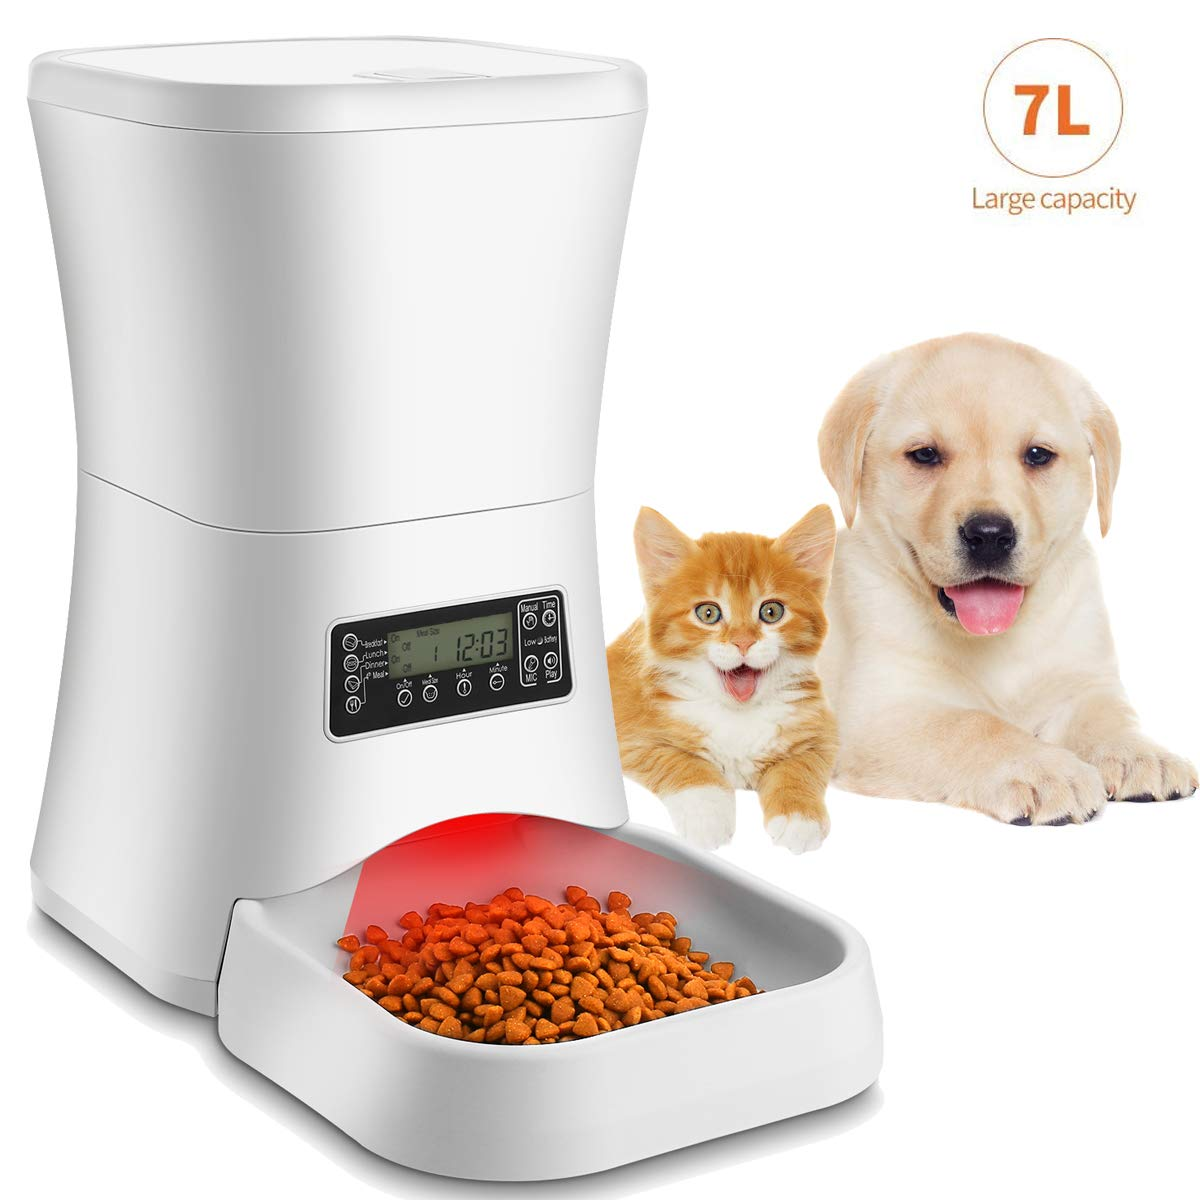 Homdox 7L Automatic Pet Feeder Food Dispenser for Cat and Dog, Auto Cat Feeder with Timer Programmable, Portion Control & Voice Recording - Up to 4 Meals for Small to Large Size Cats Dogs by Homdox